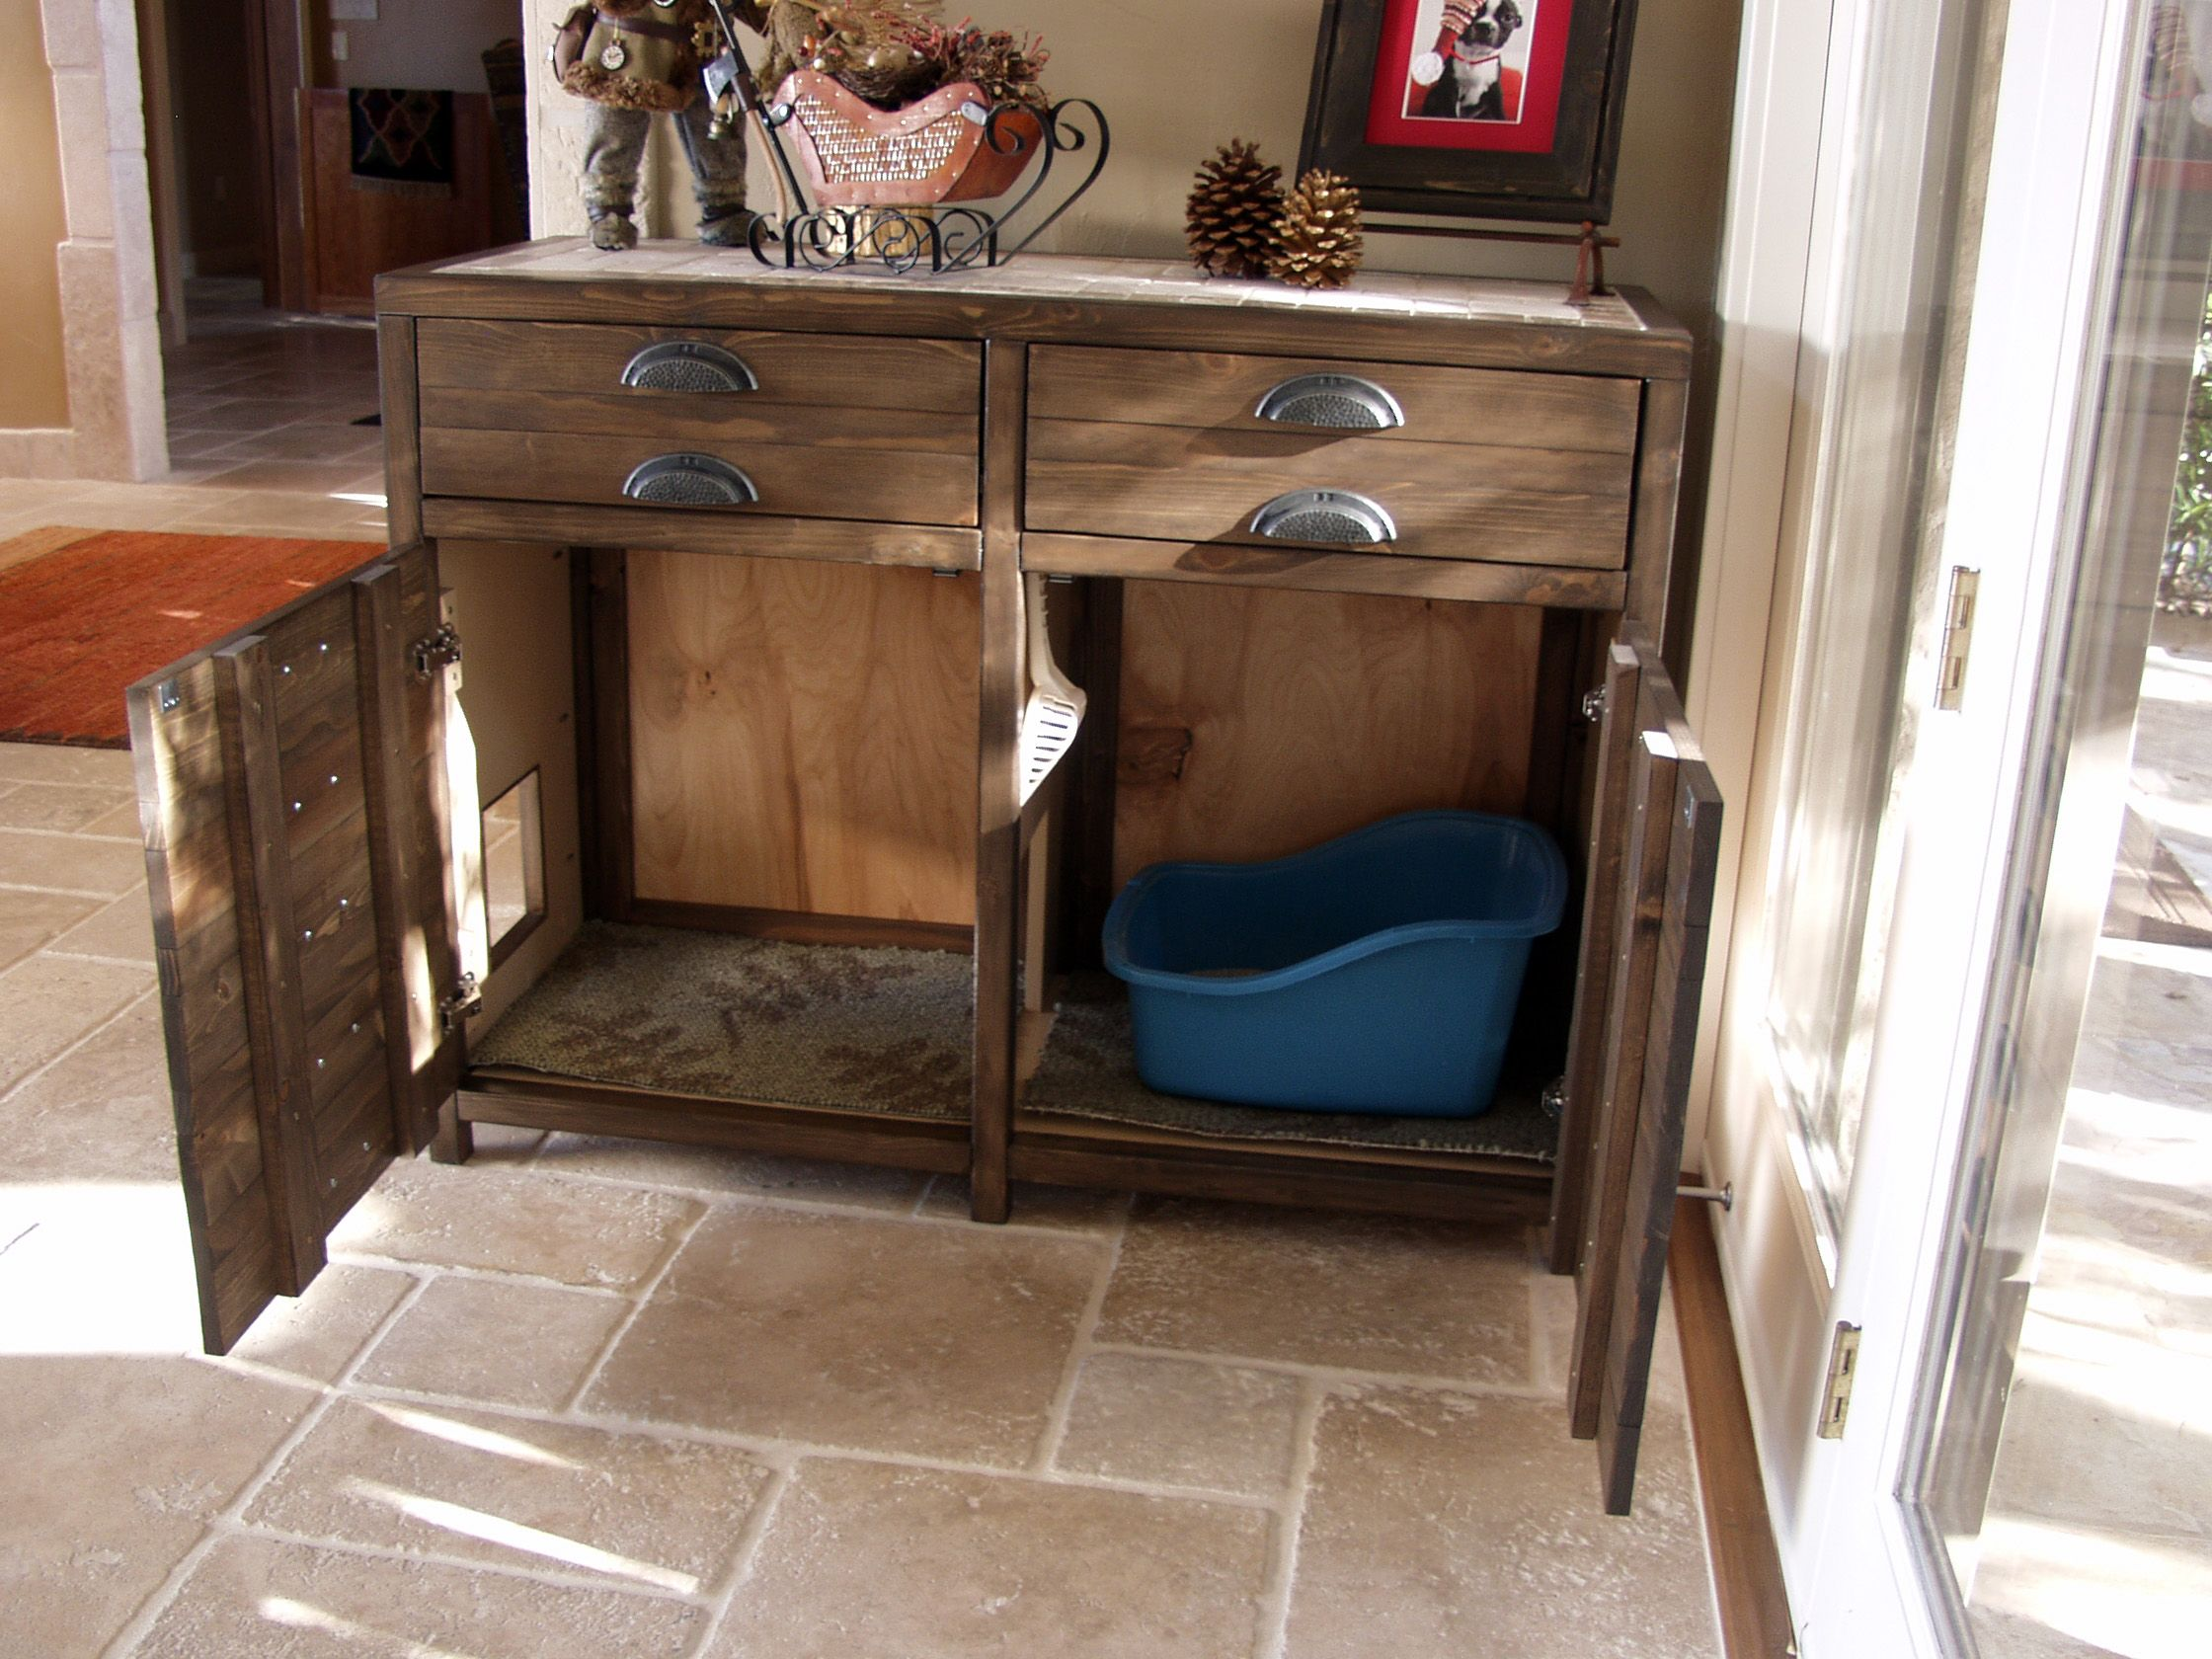 Merveilleux Printeru0027s Console Or Sneaky Litterbox Cabinet? | Do It Yourself Home  Projects From Ana White